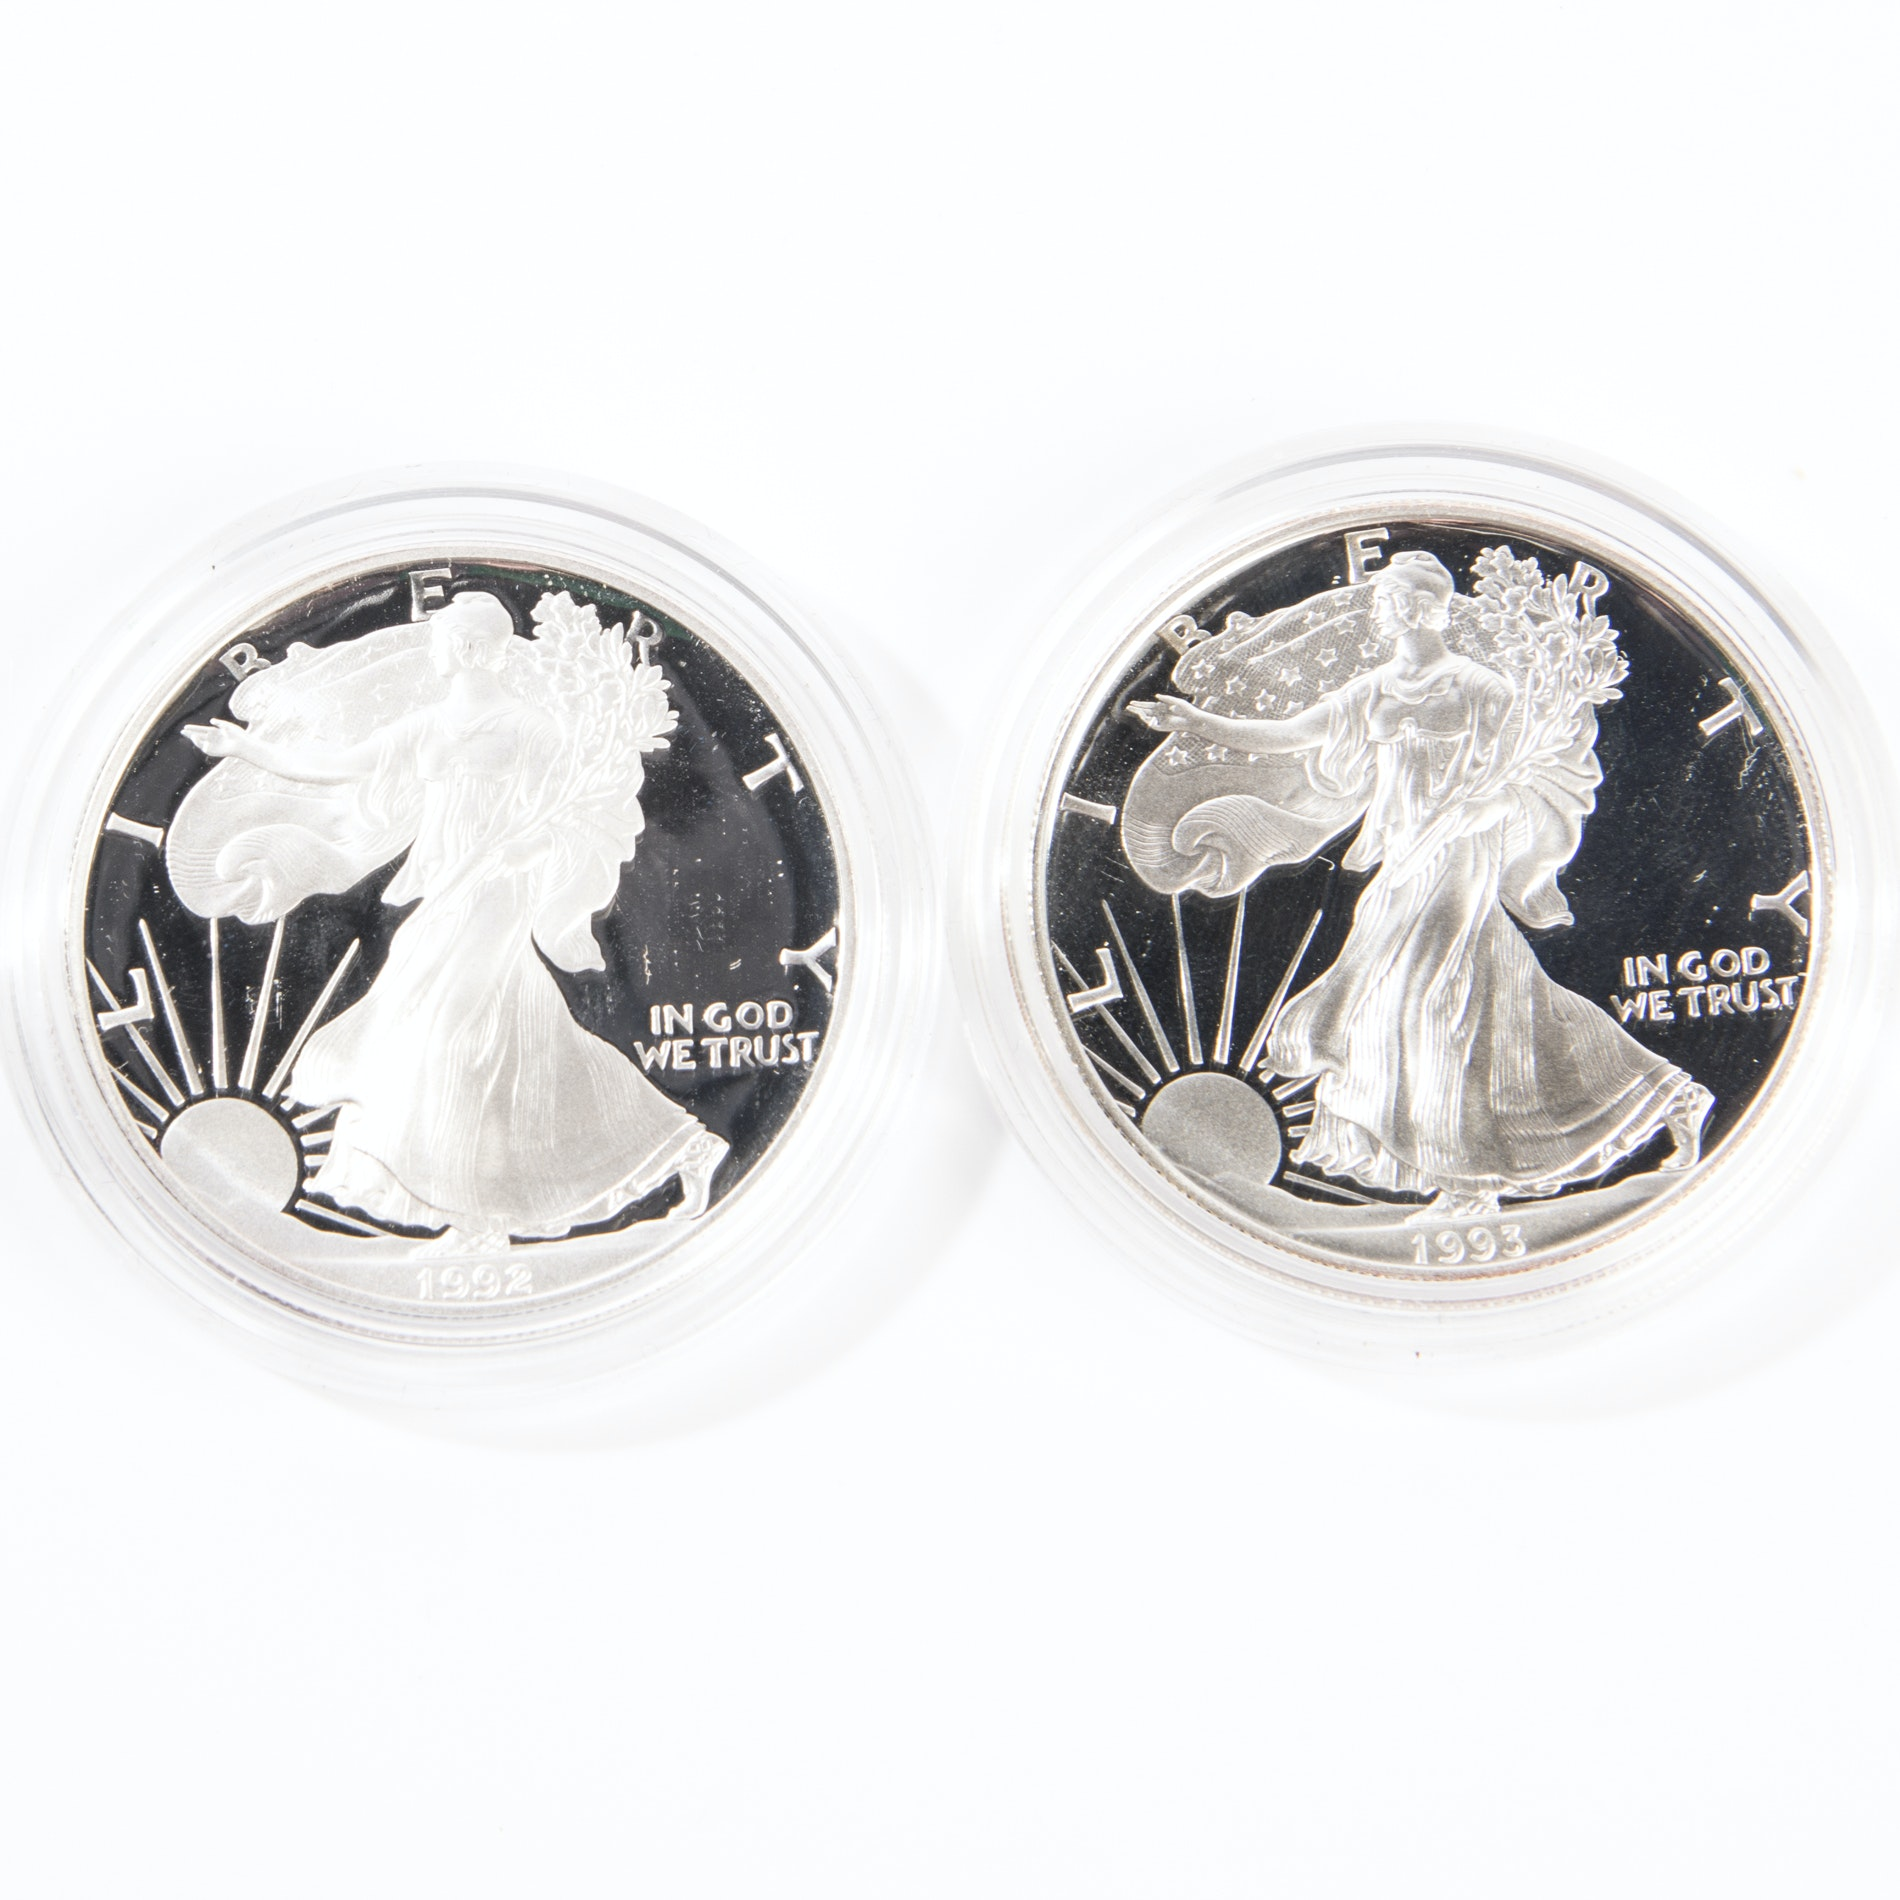 1992 and 1993 United States Silver Eagle Dollars